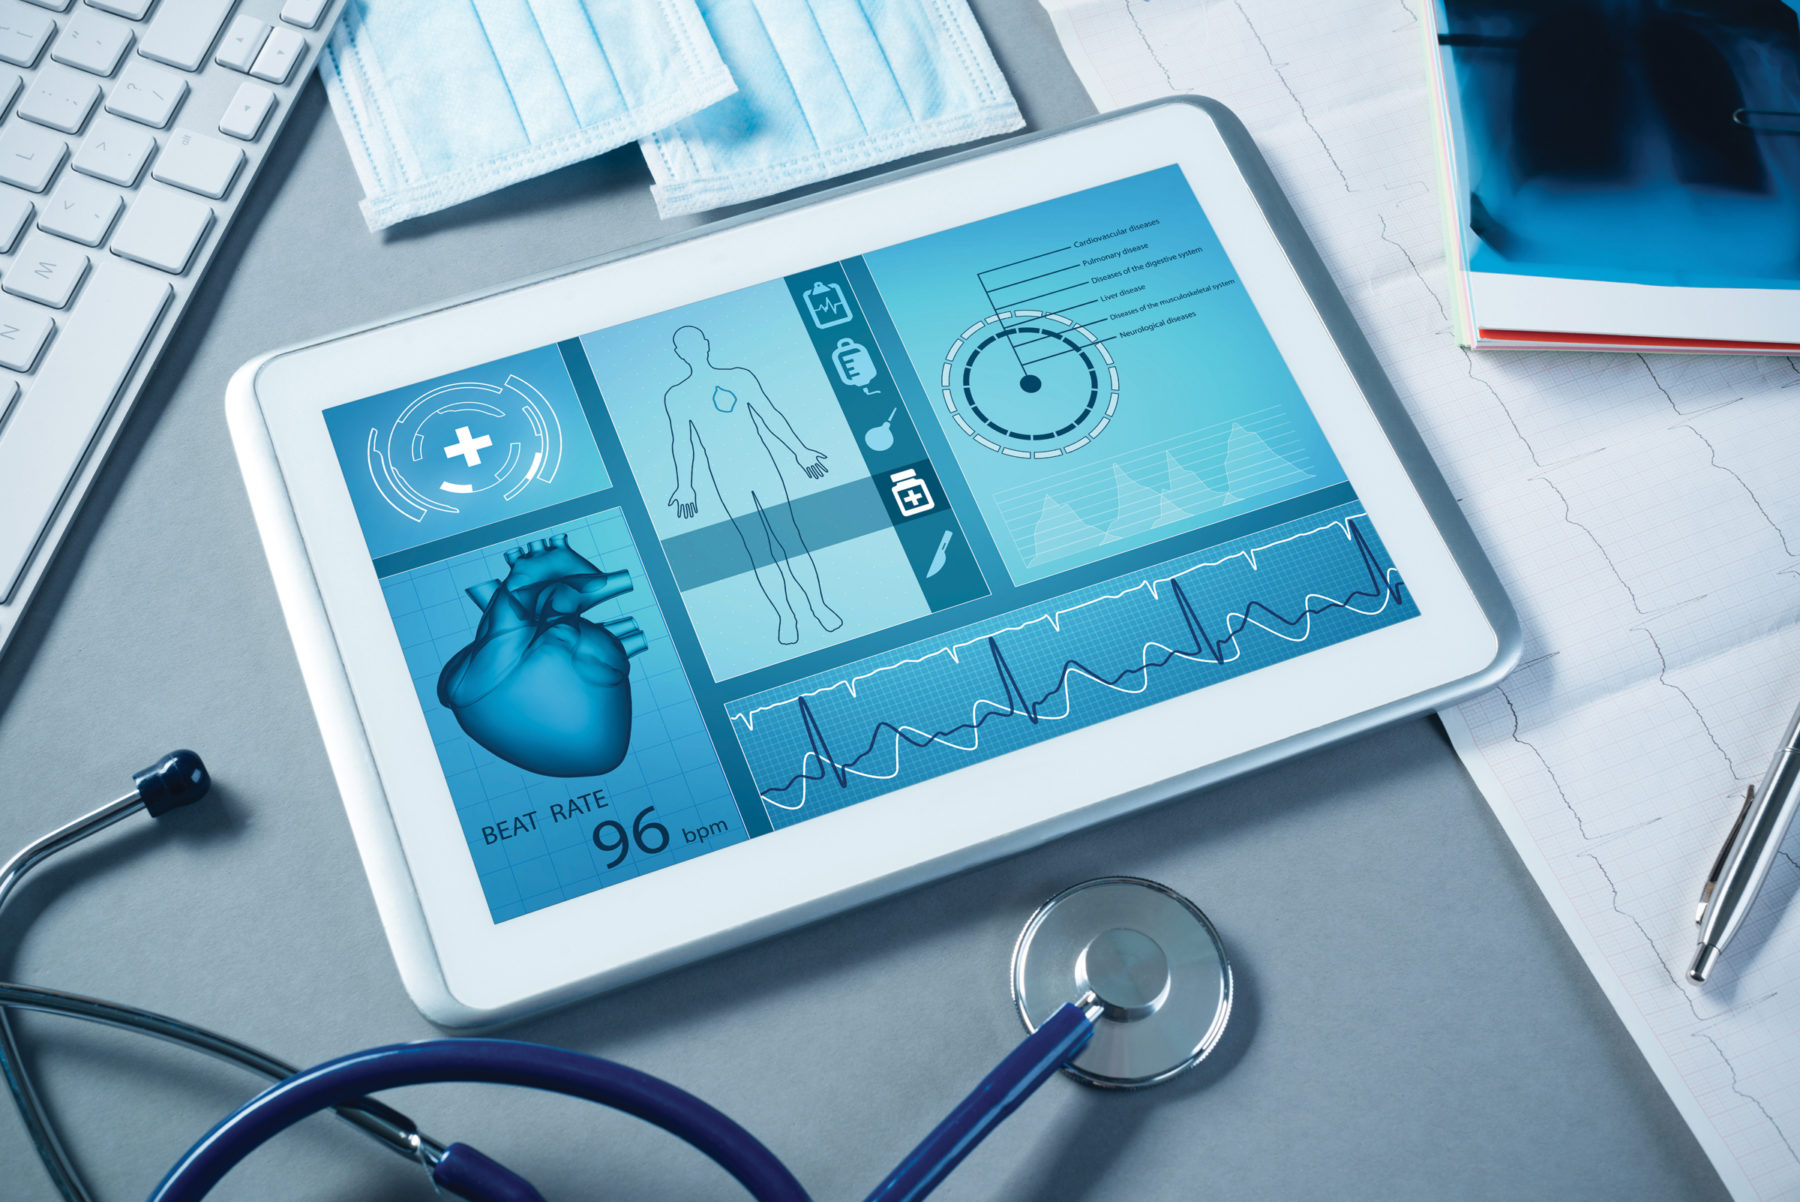 Is Qualcomm® Snapdragon™ 624 on the Radar for Your Medical Device Design?